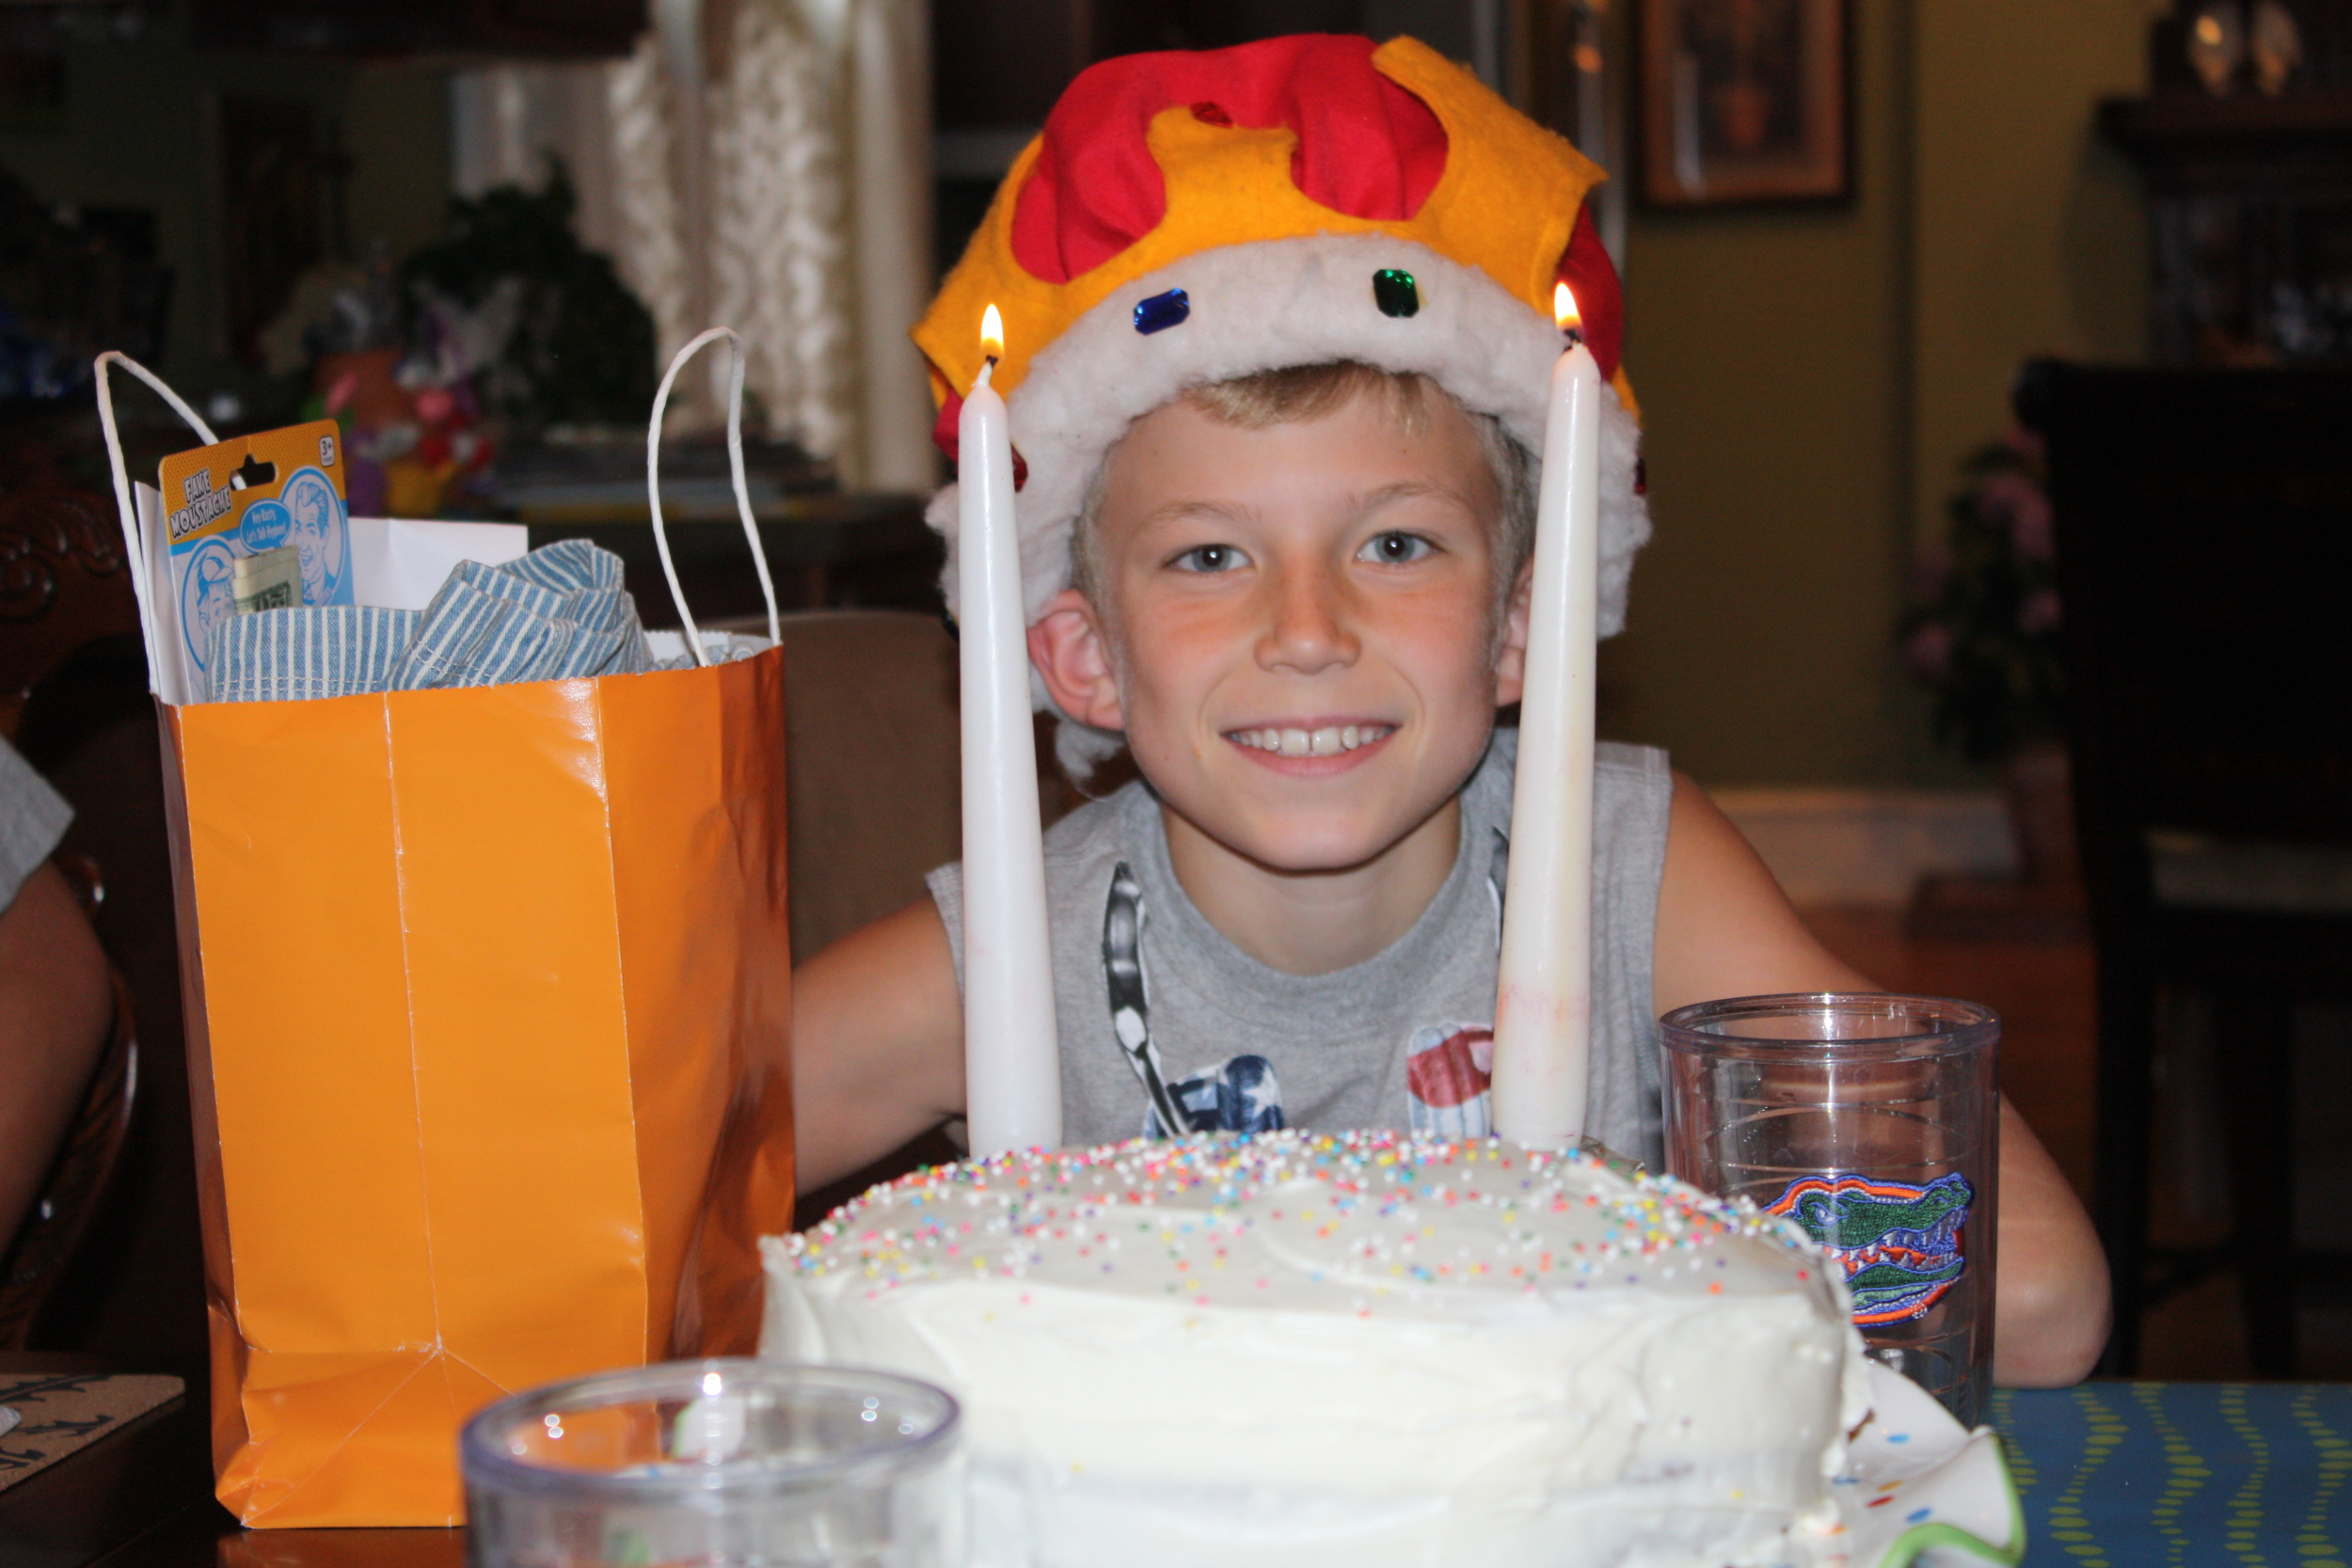 NATE ON HIS 11TH BIRTHDAY